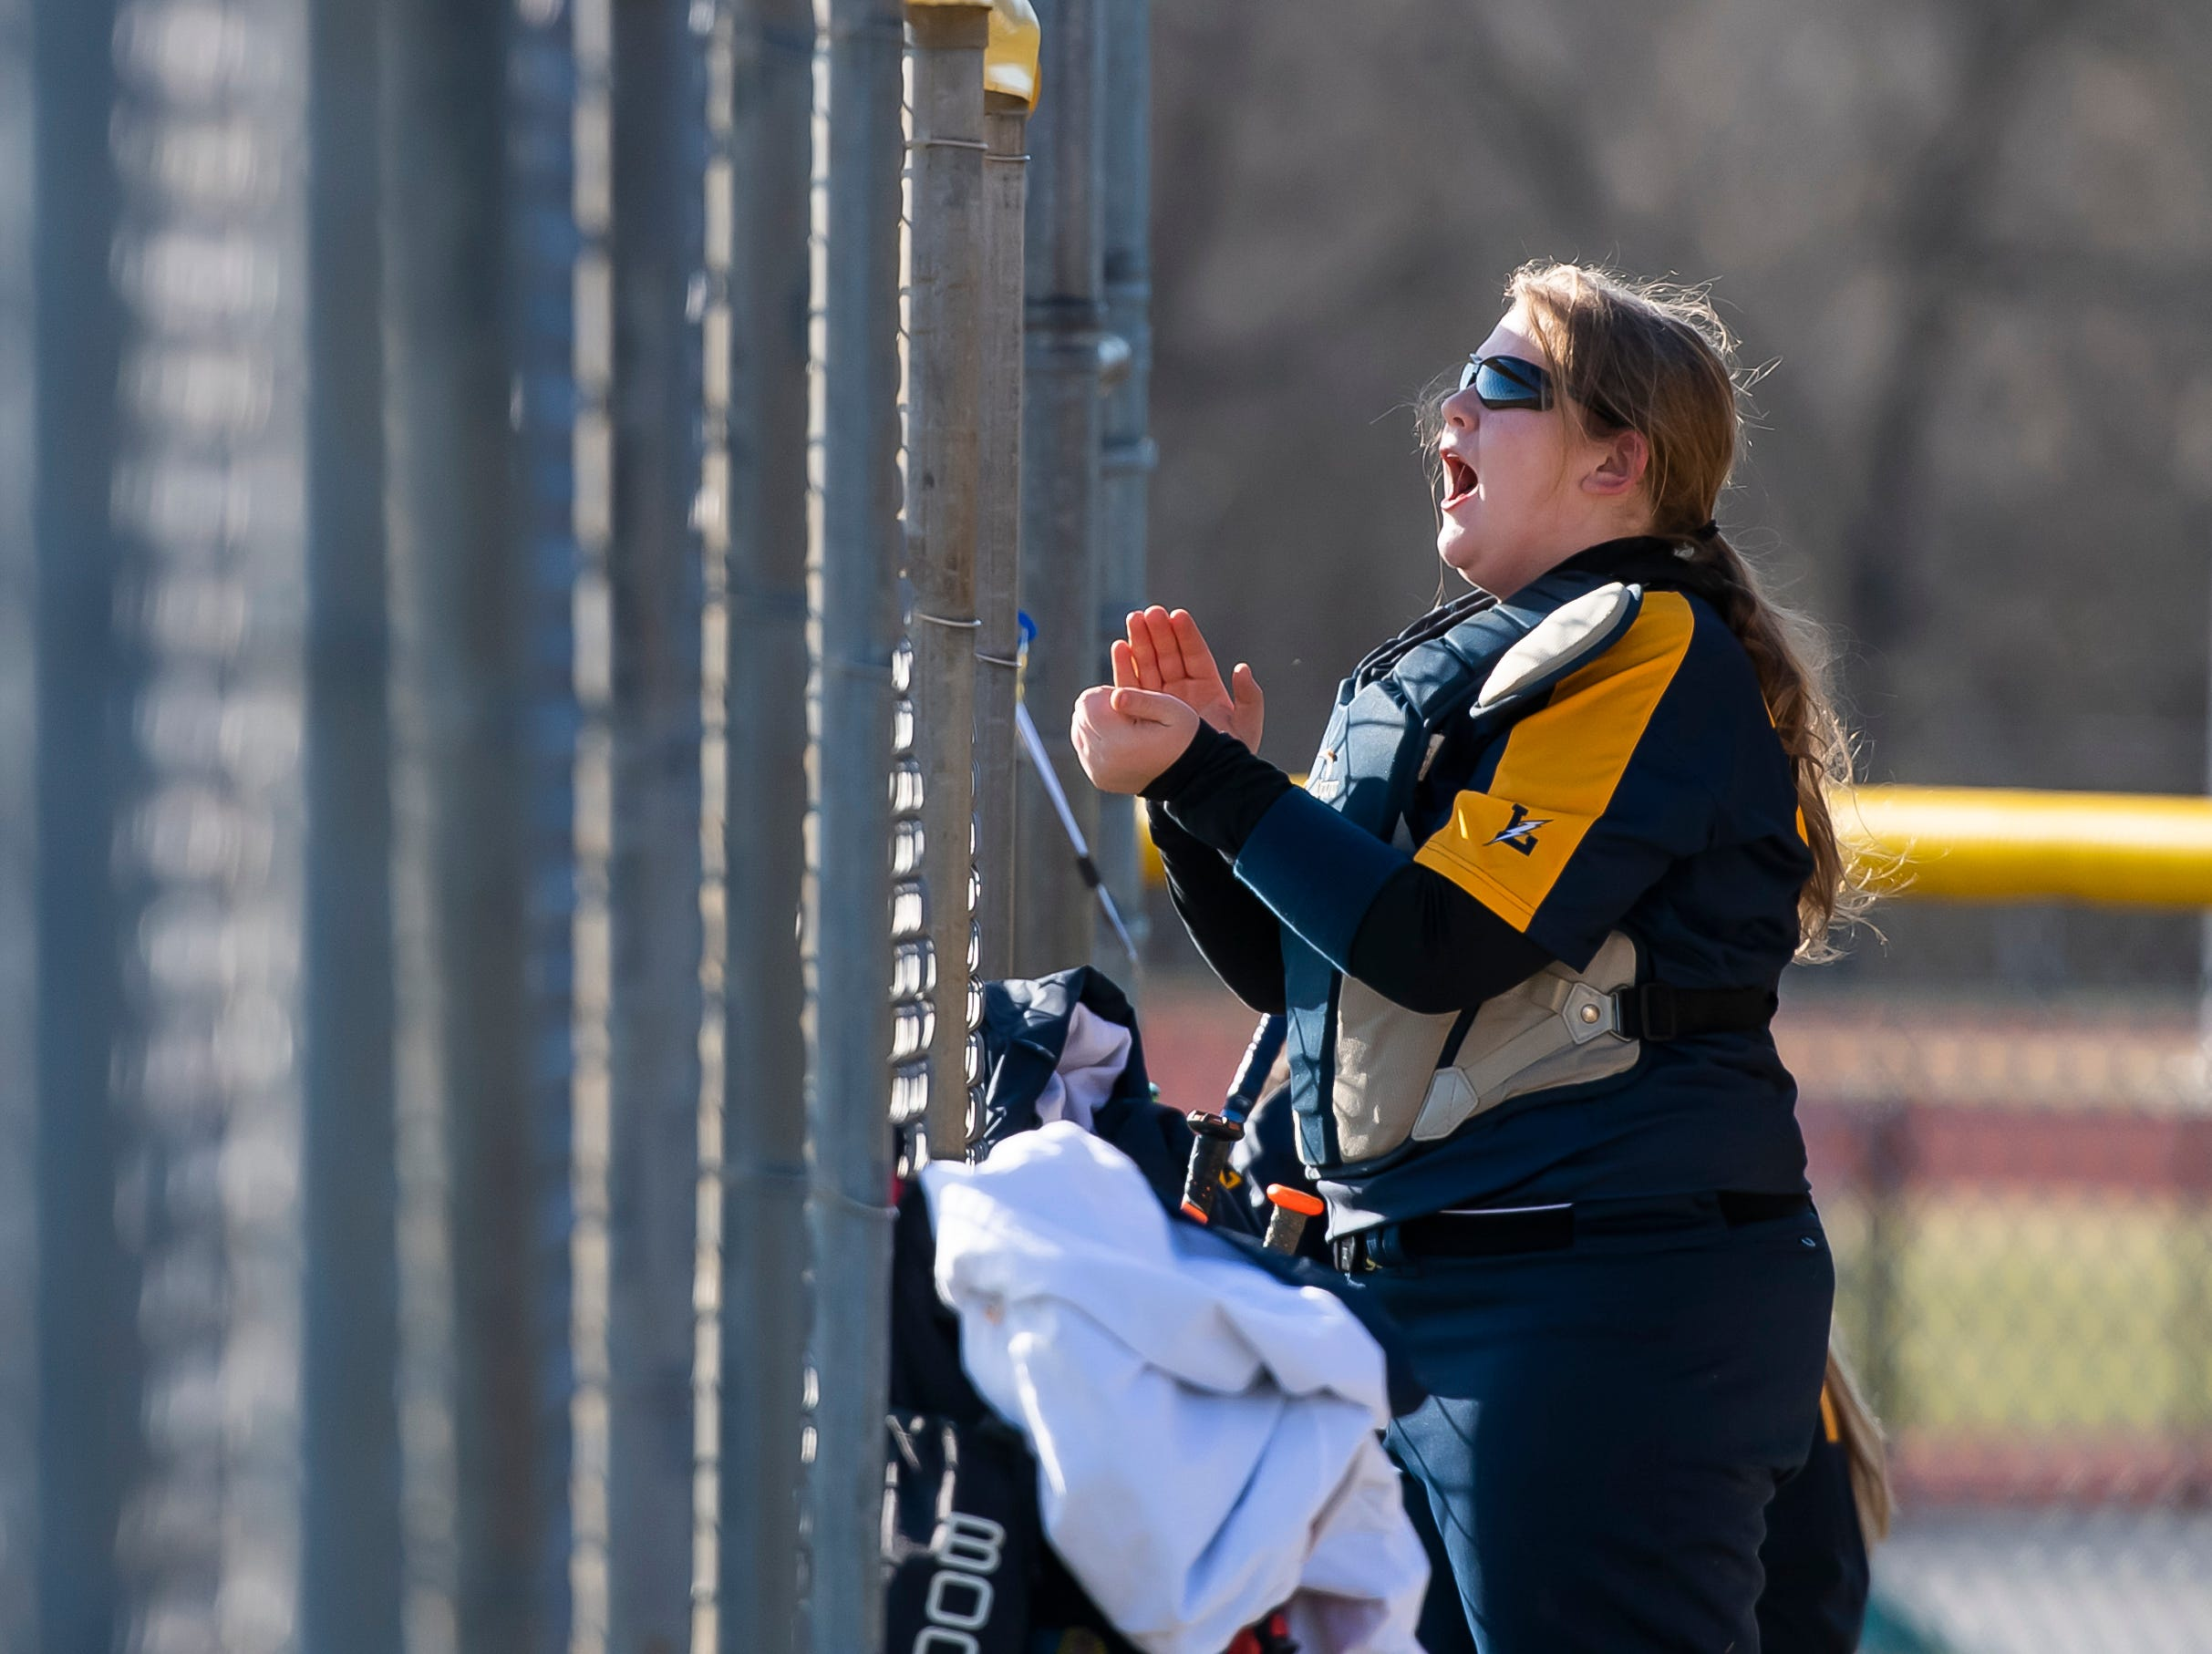 Littlestown's Bailey Smith cheers from the dugout as the Bolts score a run during a YAIAA softball game against Gettysburg on Monday, April 1, 2019. The Bolts won 10-4.